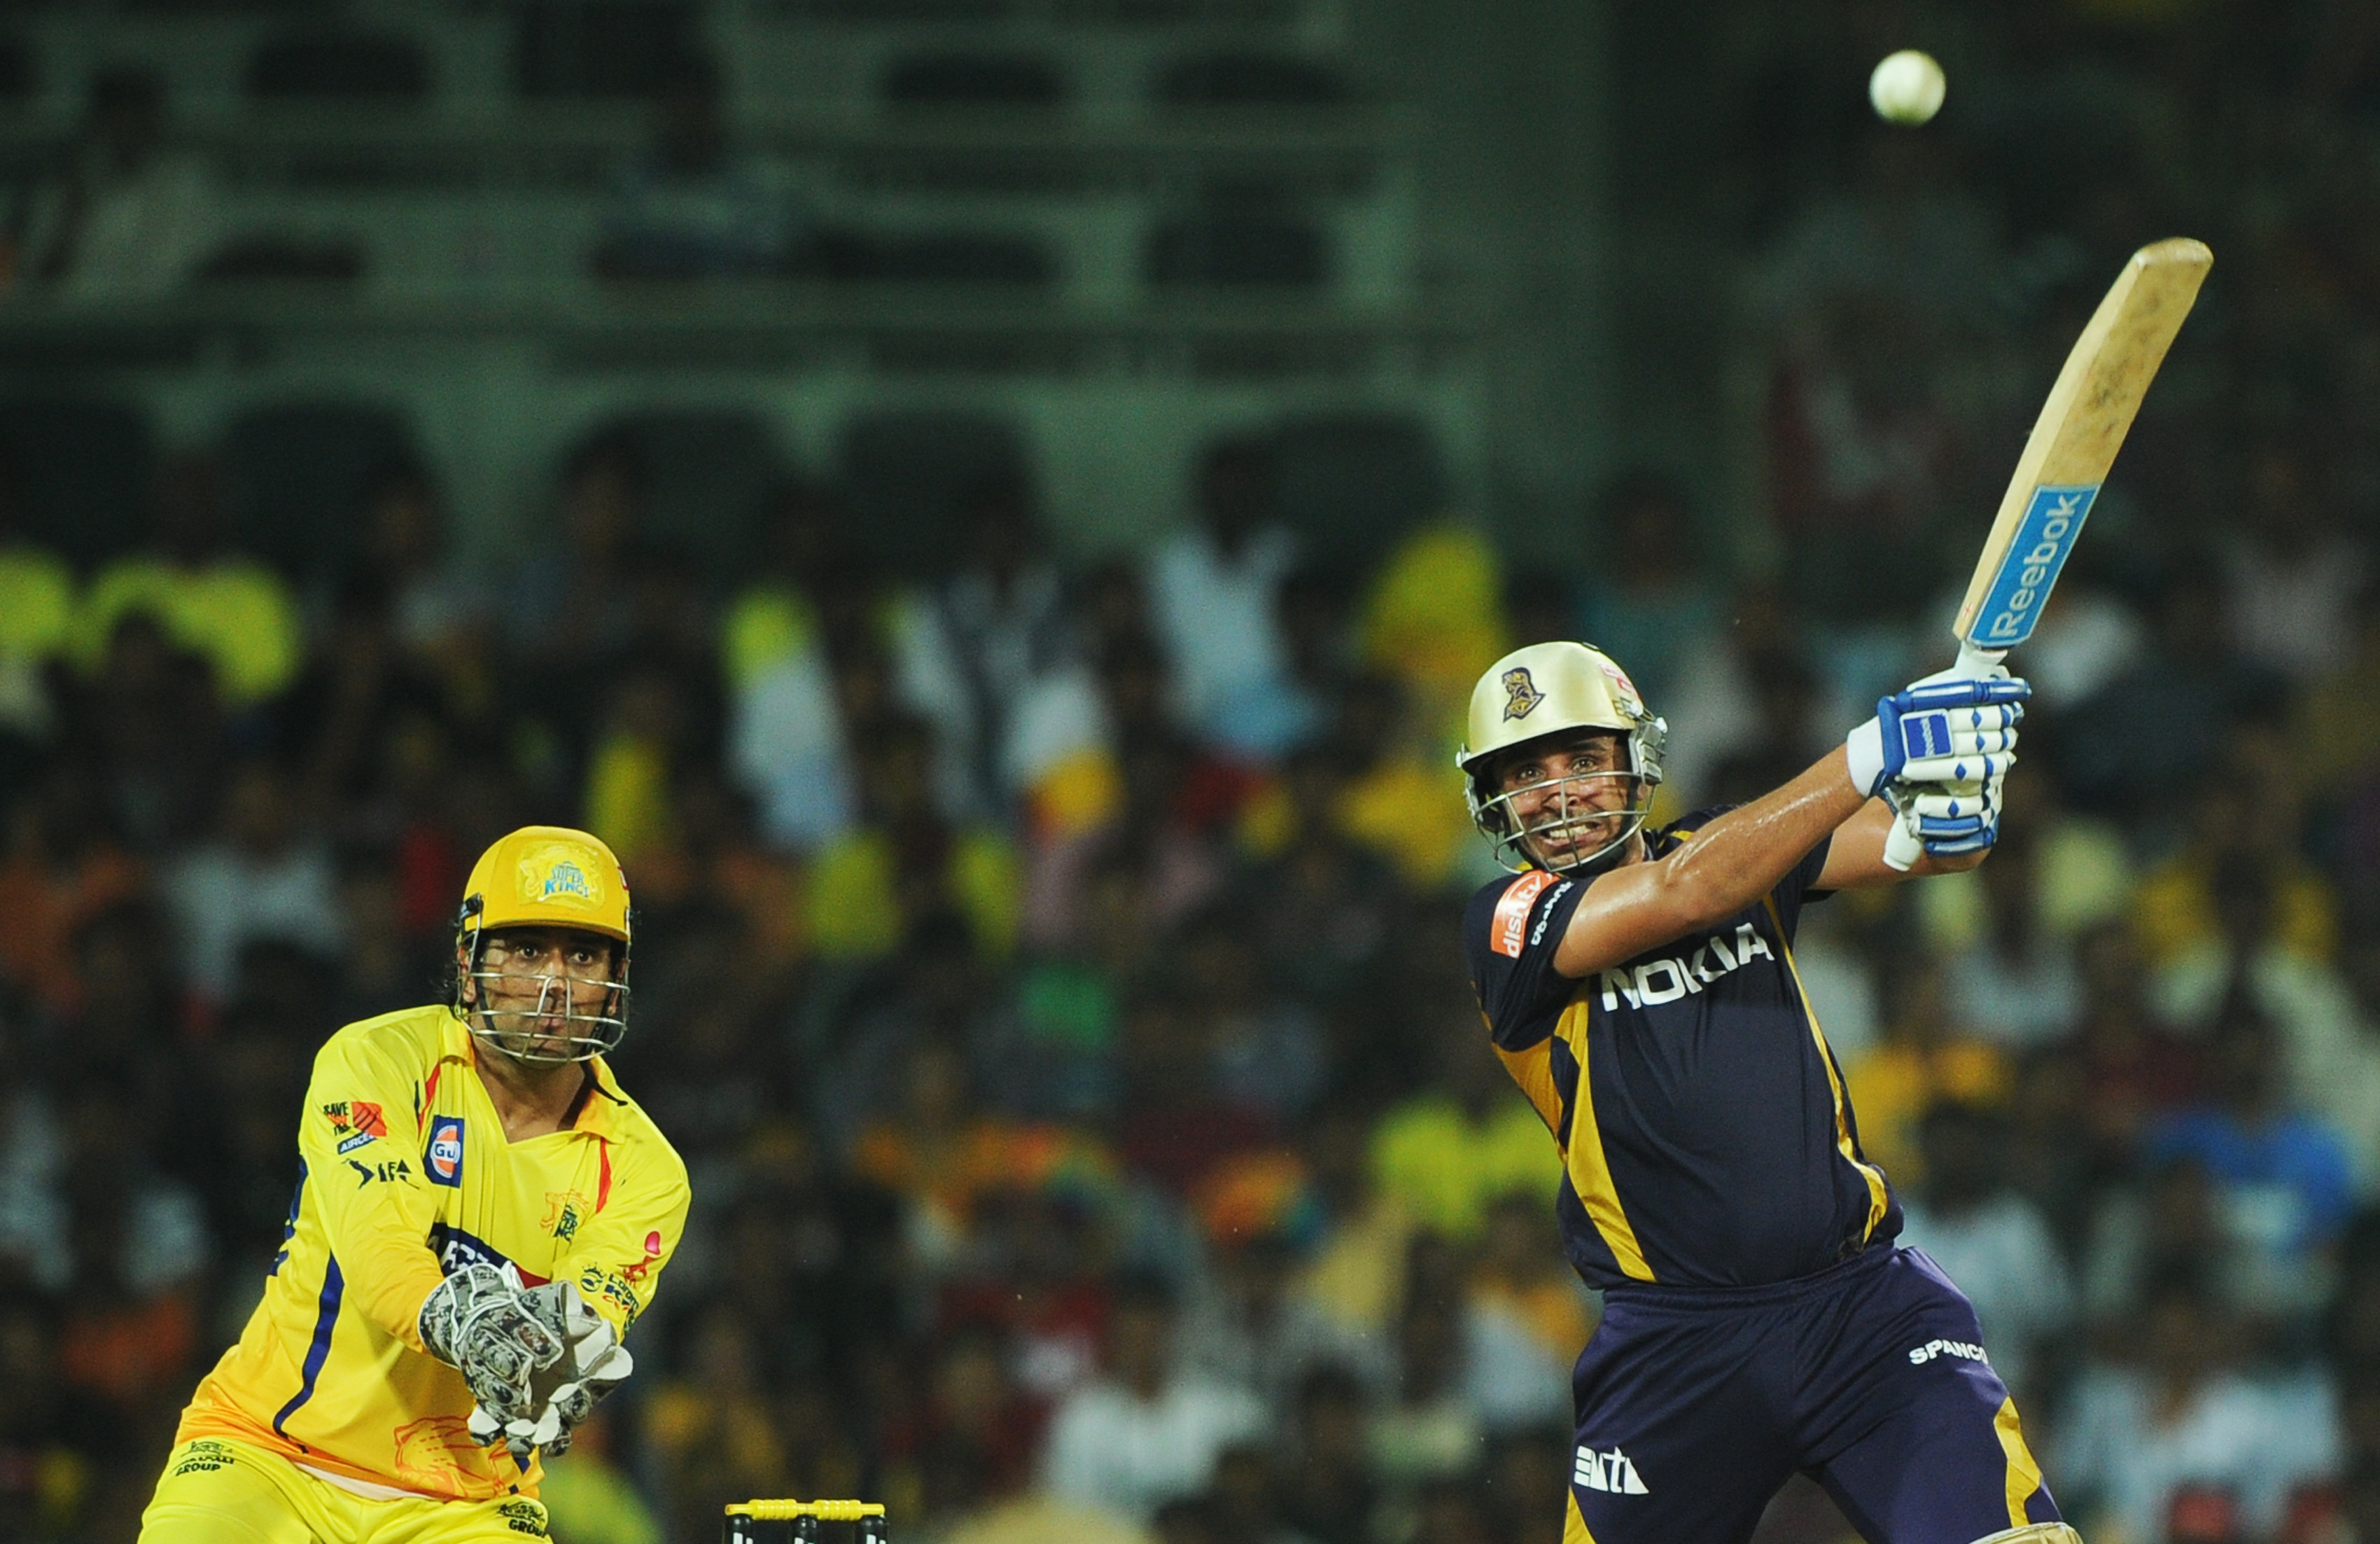 Manvinder Bisla was the Man of the Match in the IPL 2012 final against CSK. AFP